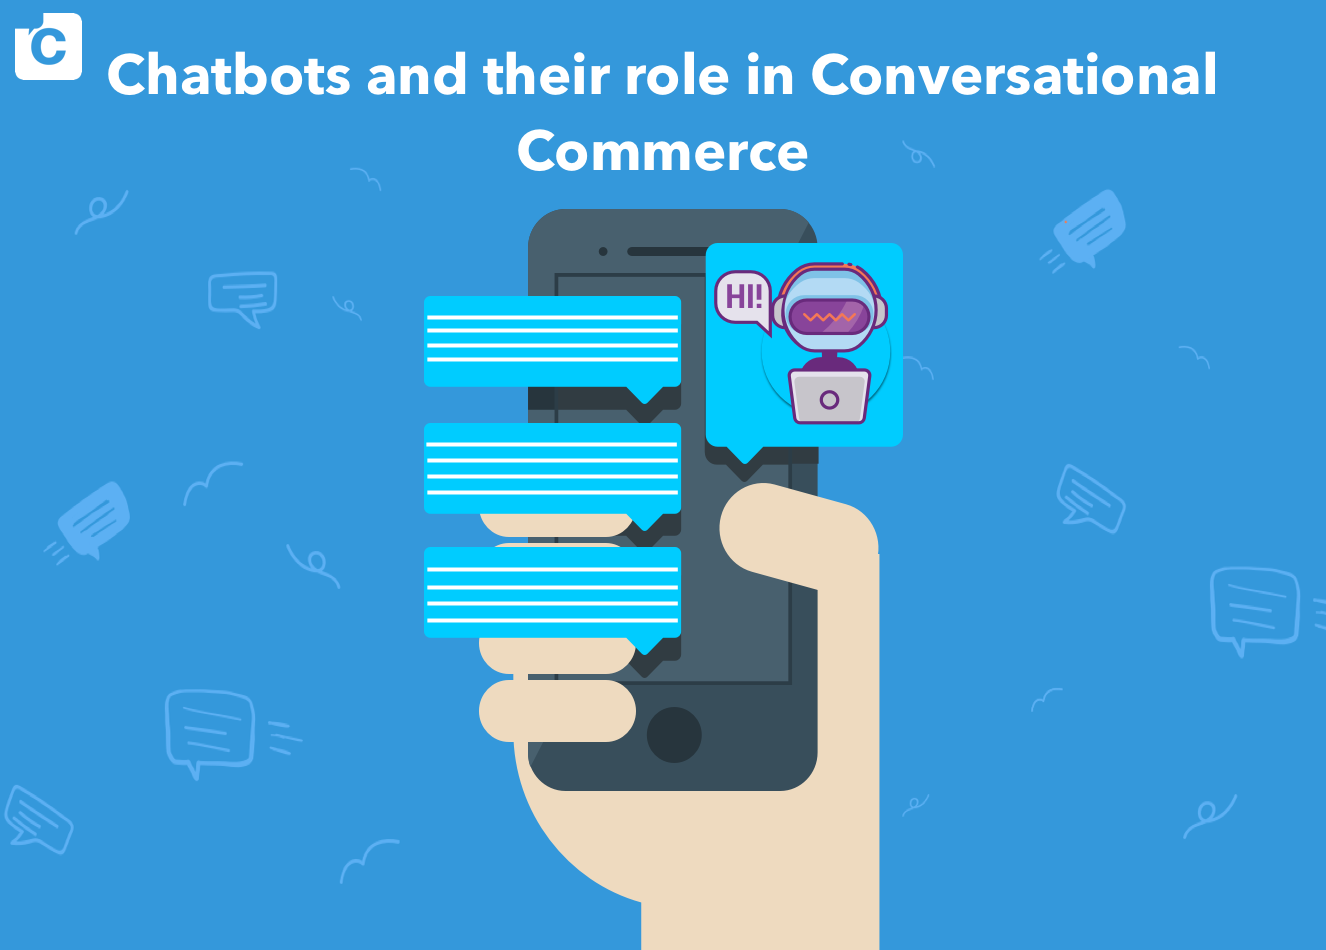 Chatbots and their role in Conversational Commerce